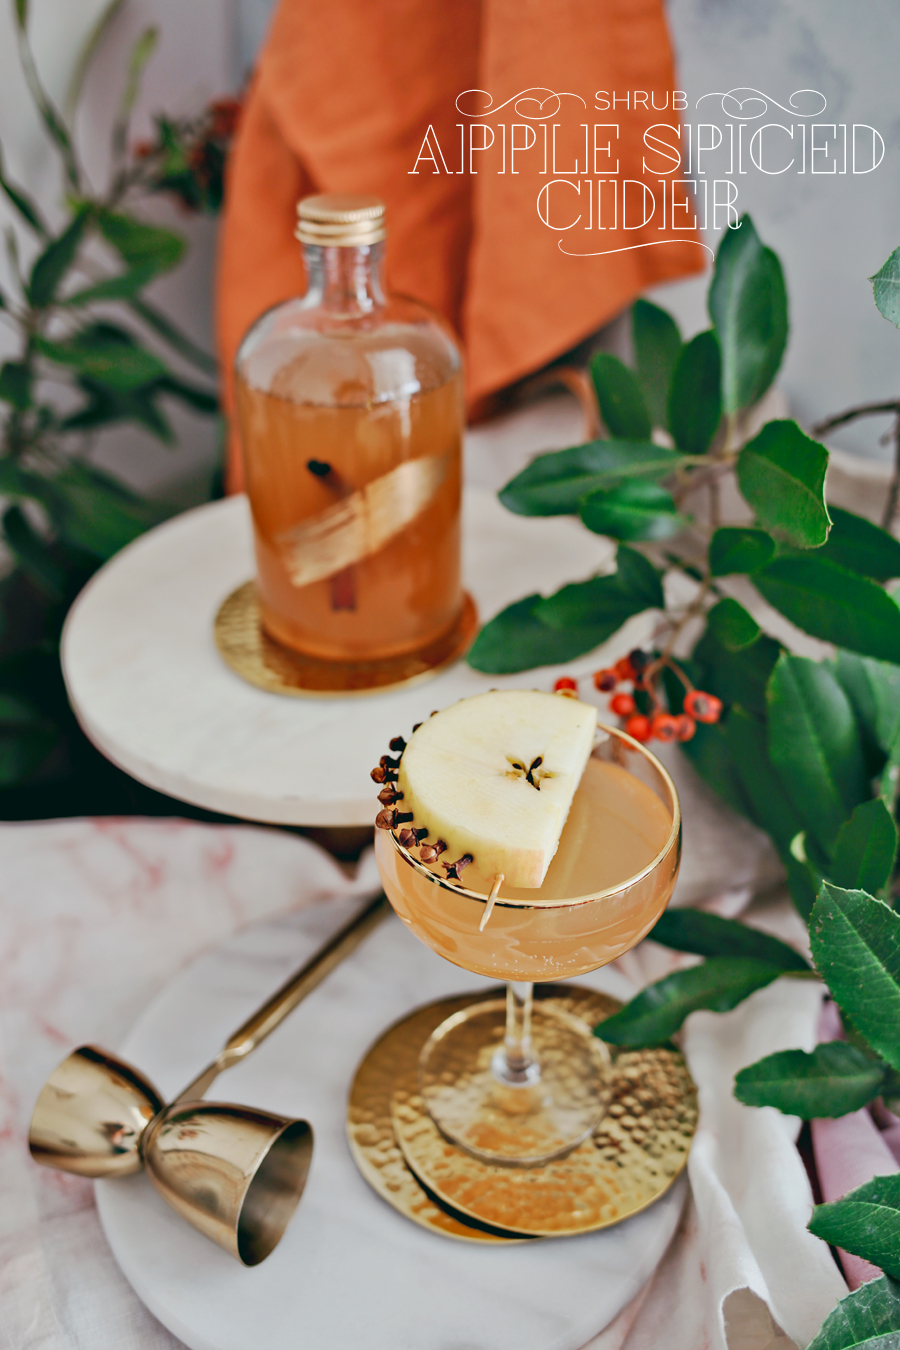 03_Apple-Spiced-Cider-Shrub-Cocktail-Dine-x-Design.jpg